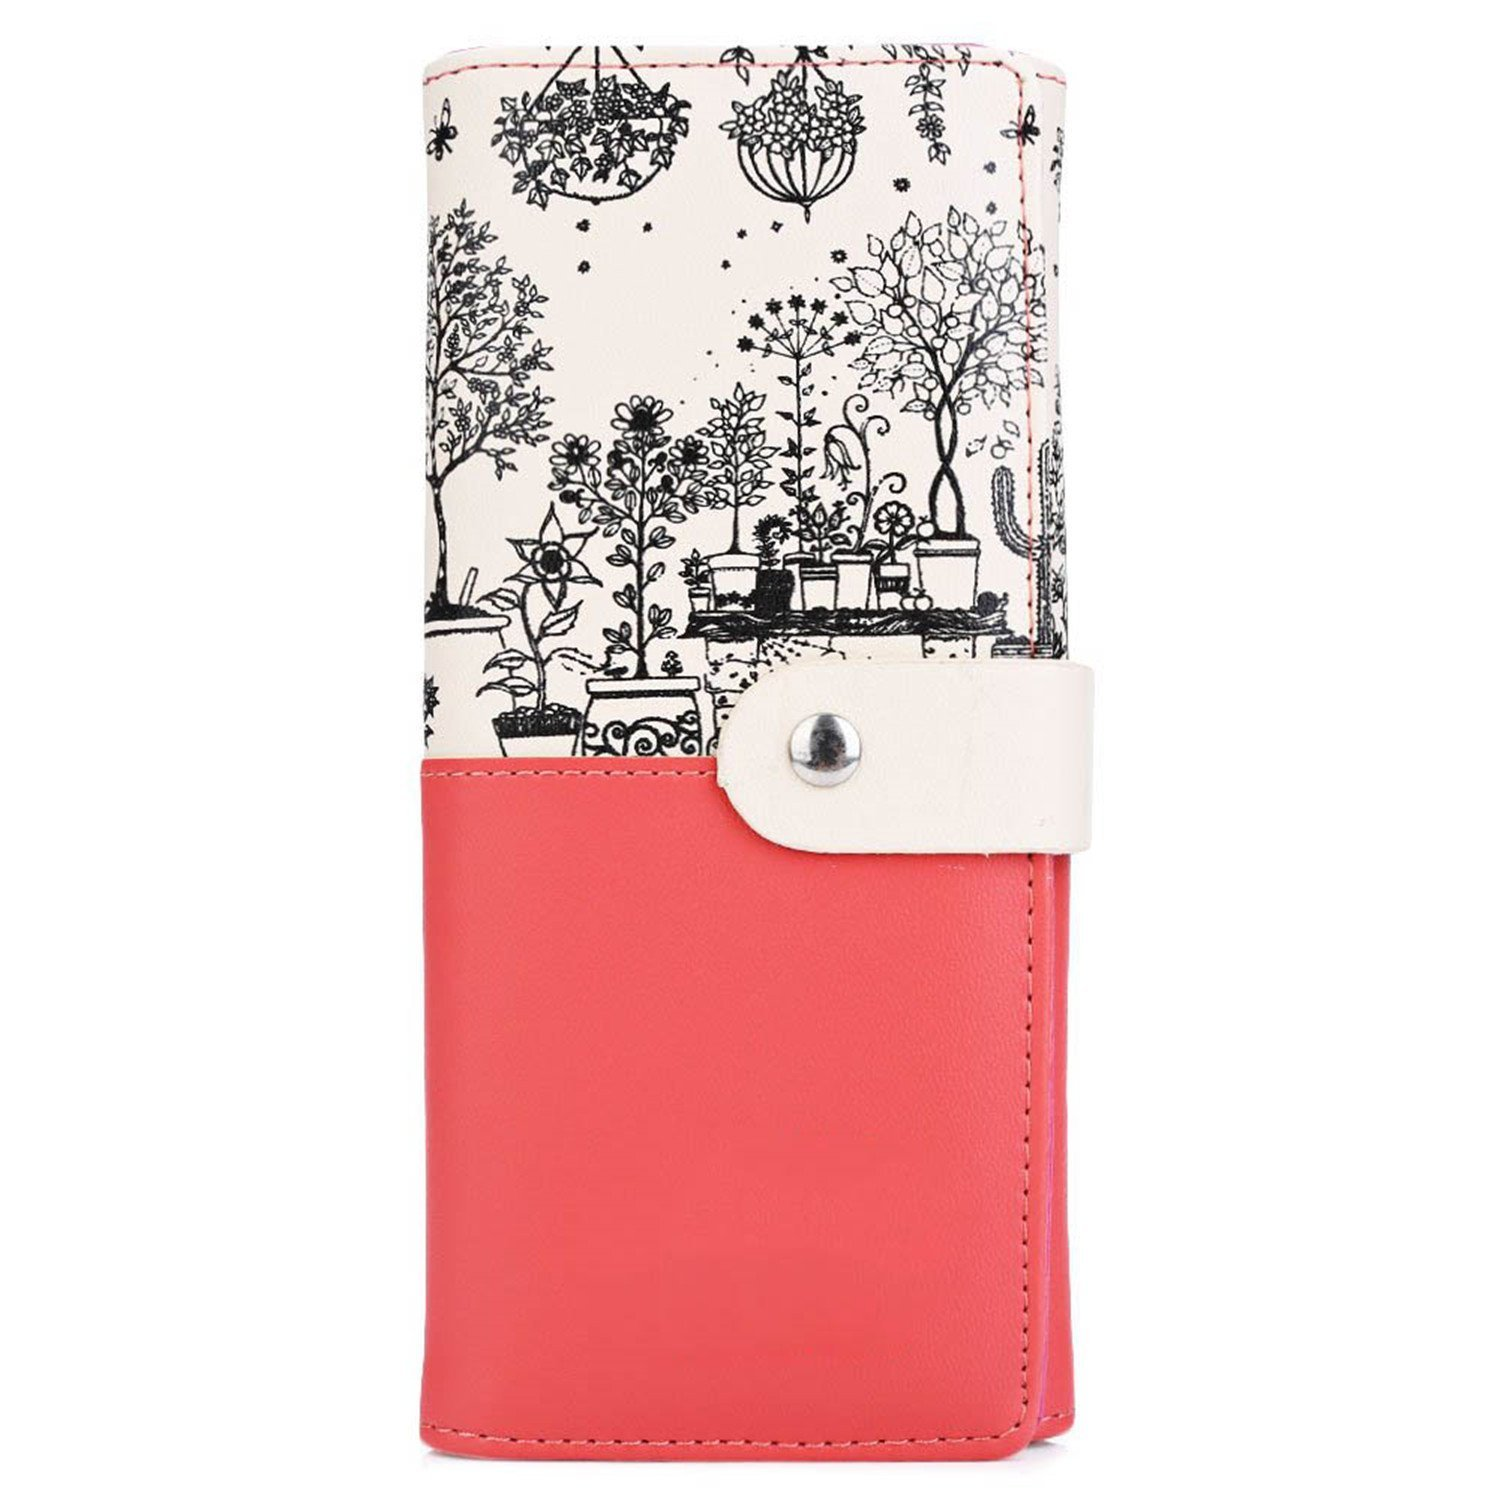 Amazon.com: Rising ON Women Gift Clutch Wallet PU Leather ...